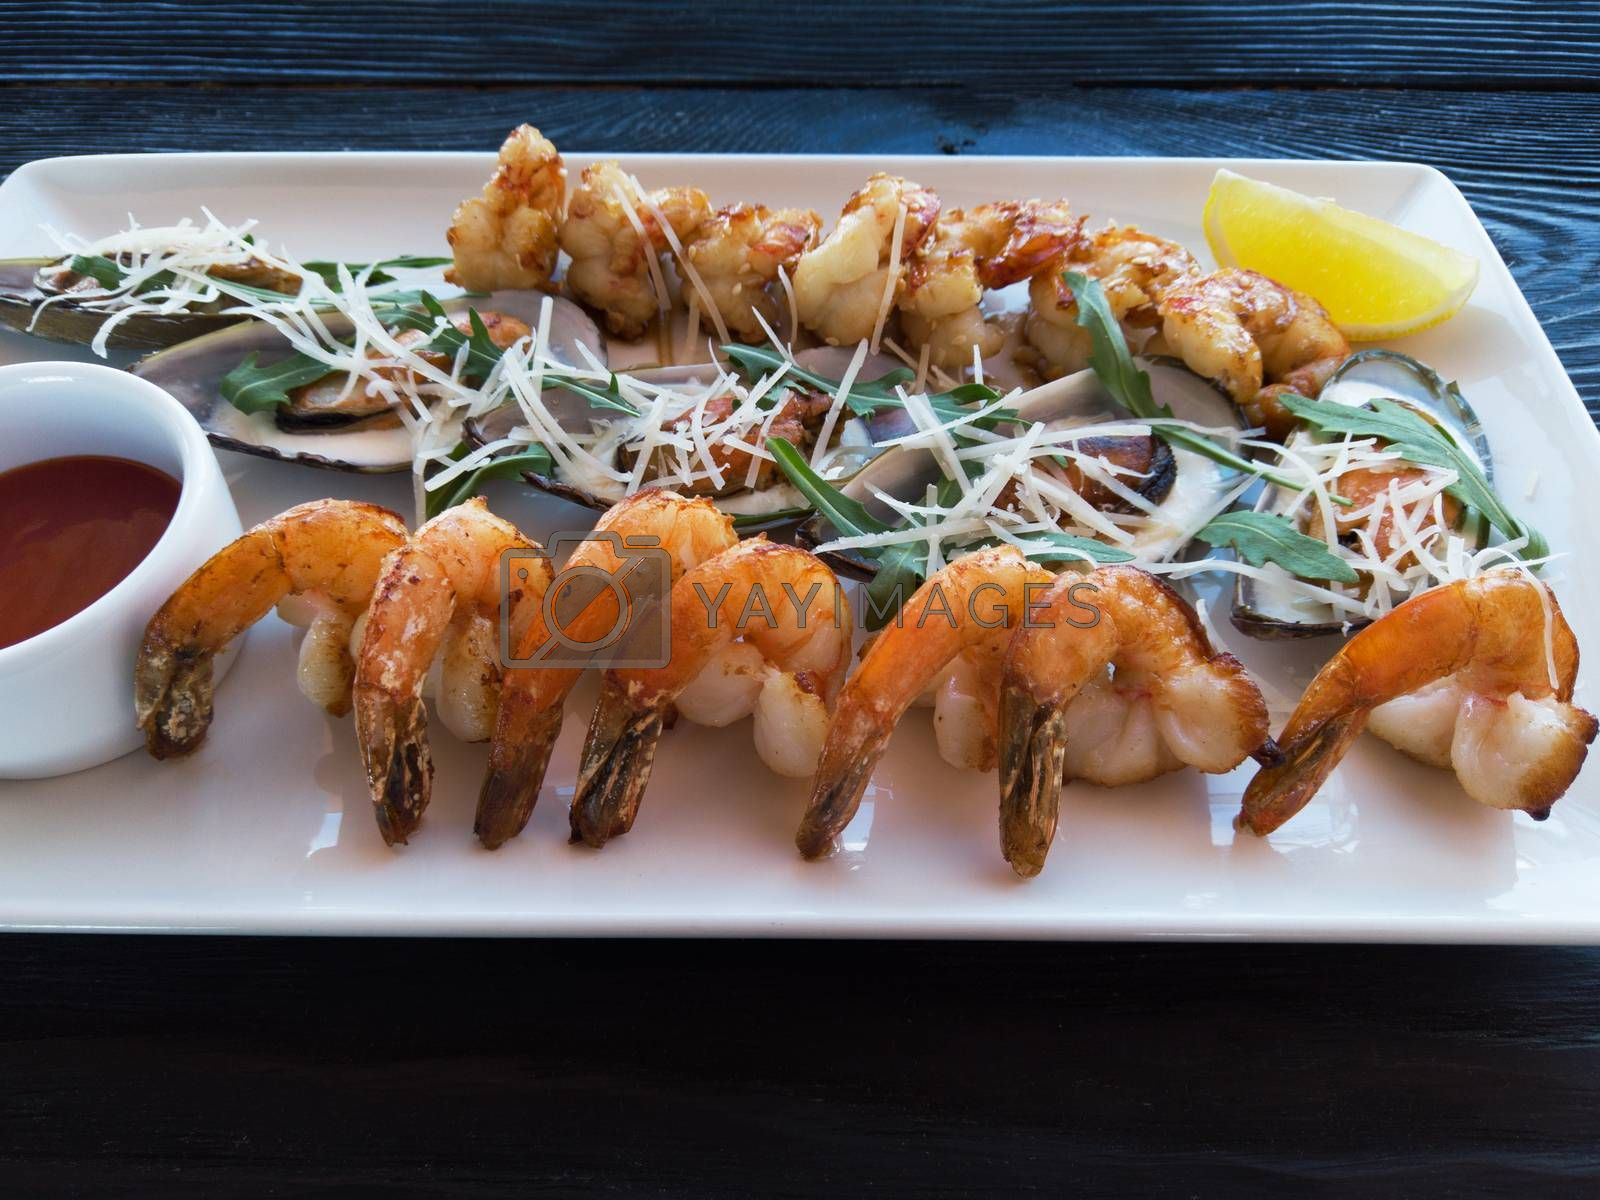 Fried shrimps and mussels with sauce and lemon on plate